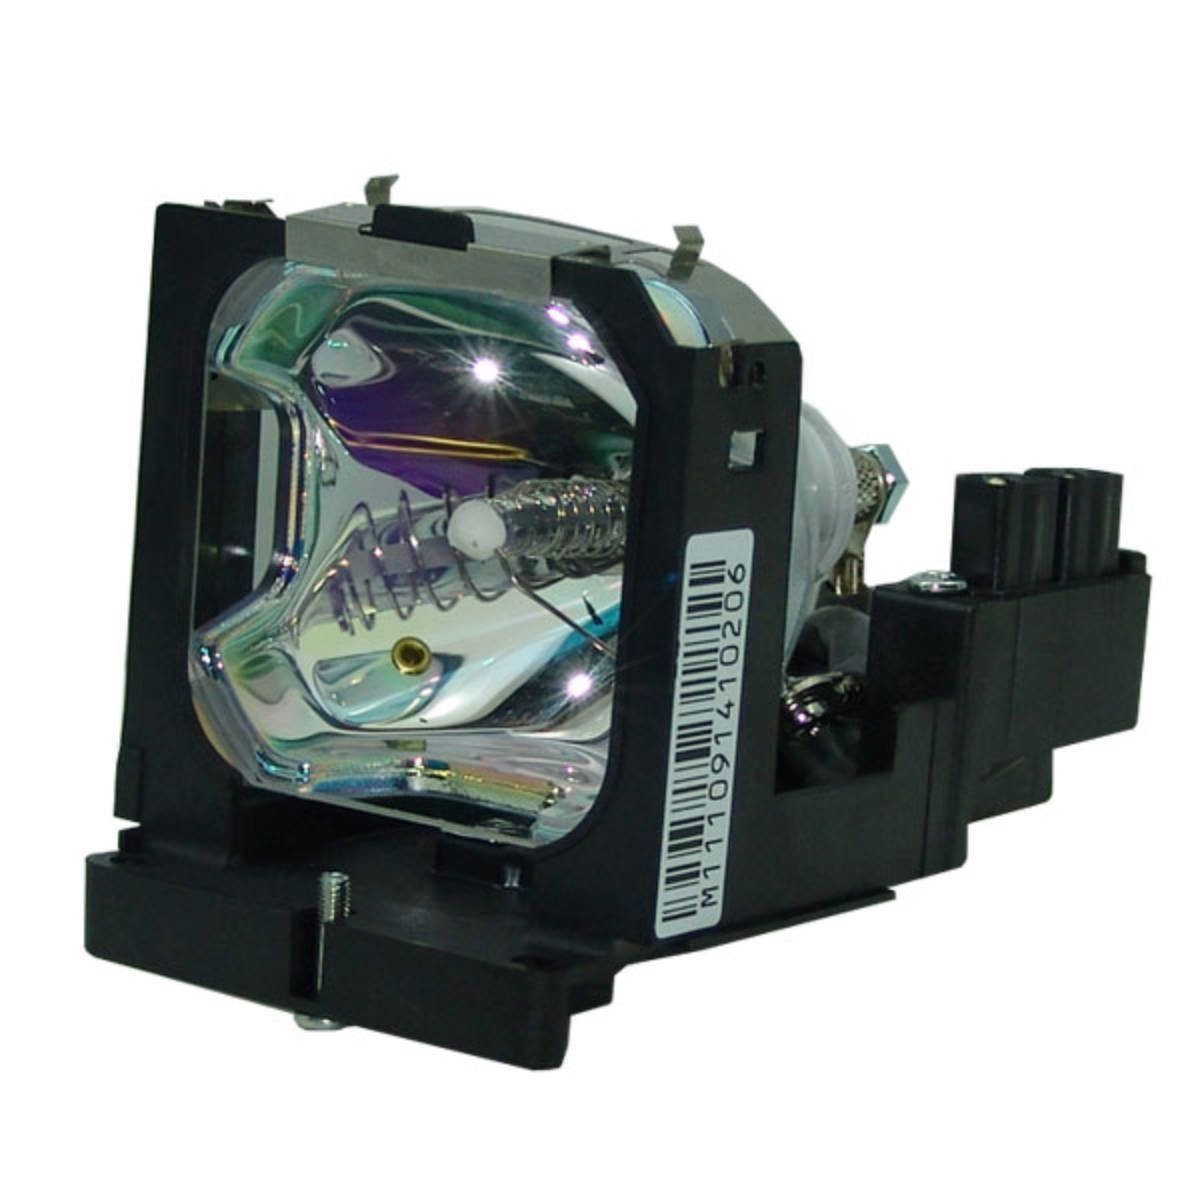 POA-LMP86 LMP86 610-317-5355 for SANYO PLV-Z3 PLV-Z1X Projector Lamp Bulb with housing projector lamp lmp86 without housing for plv z1x z3 sanyo